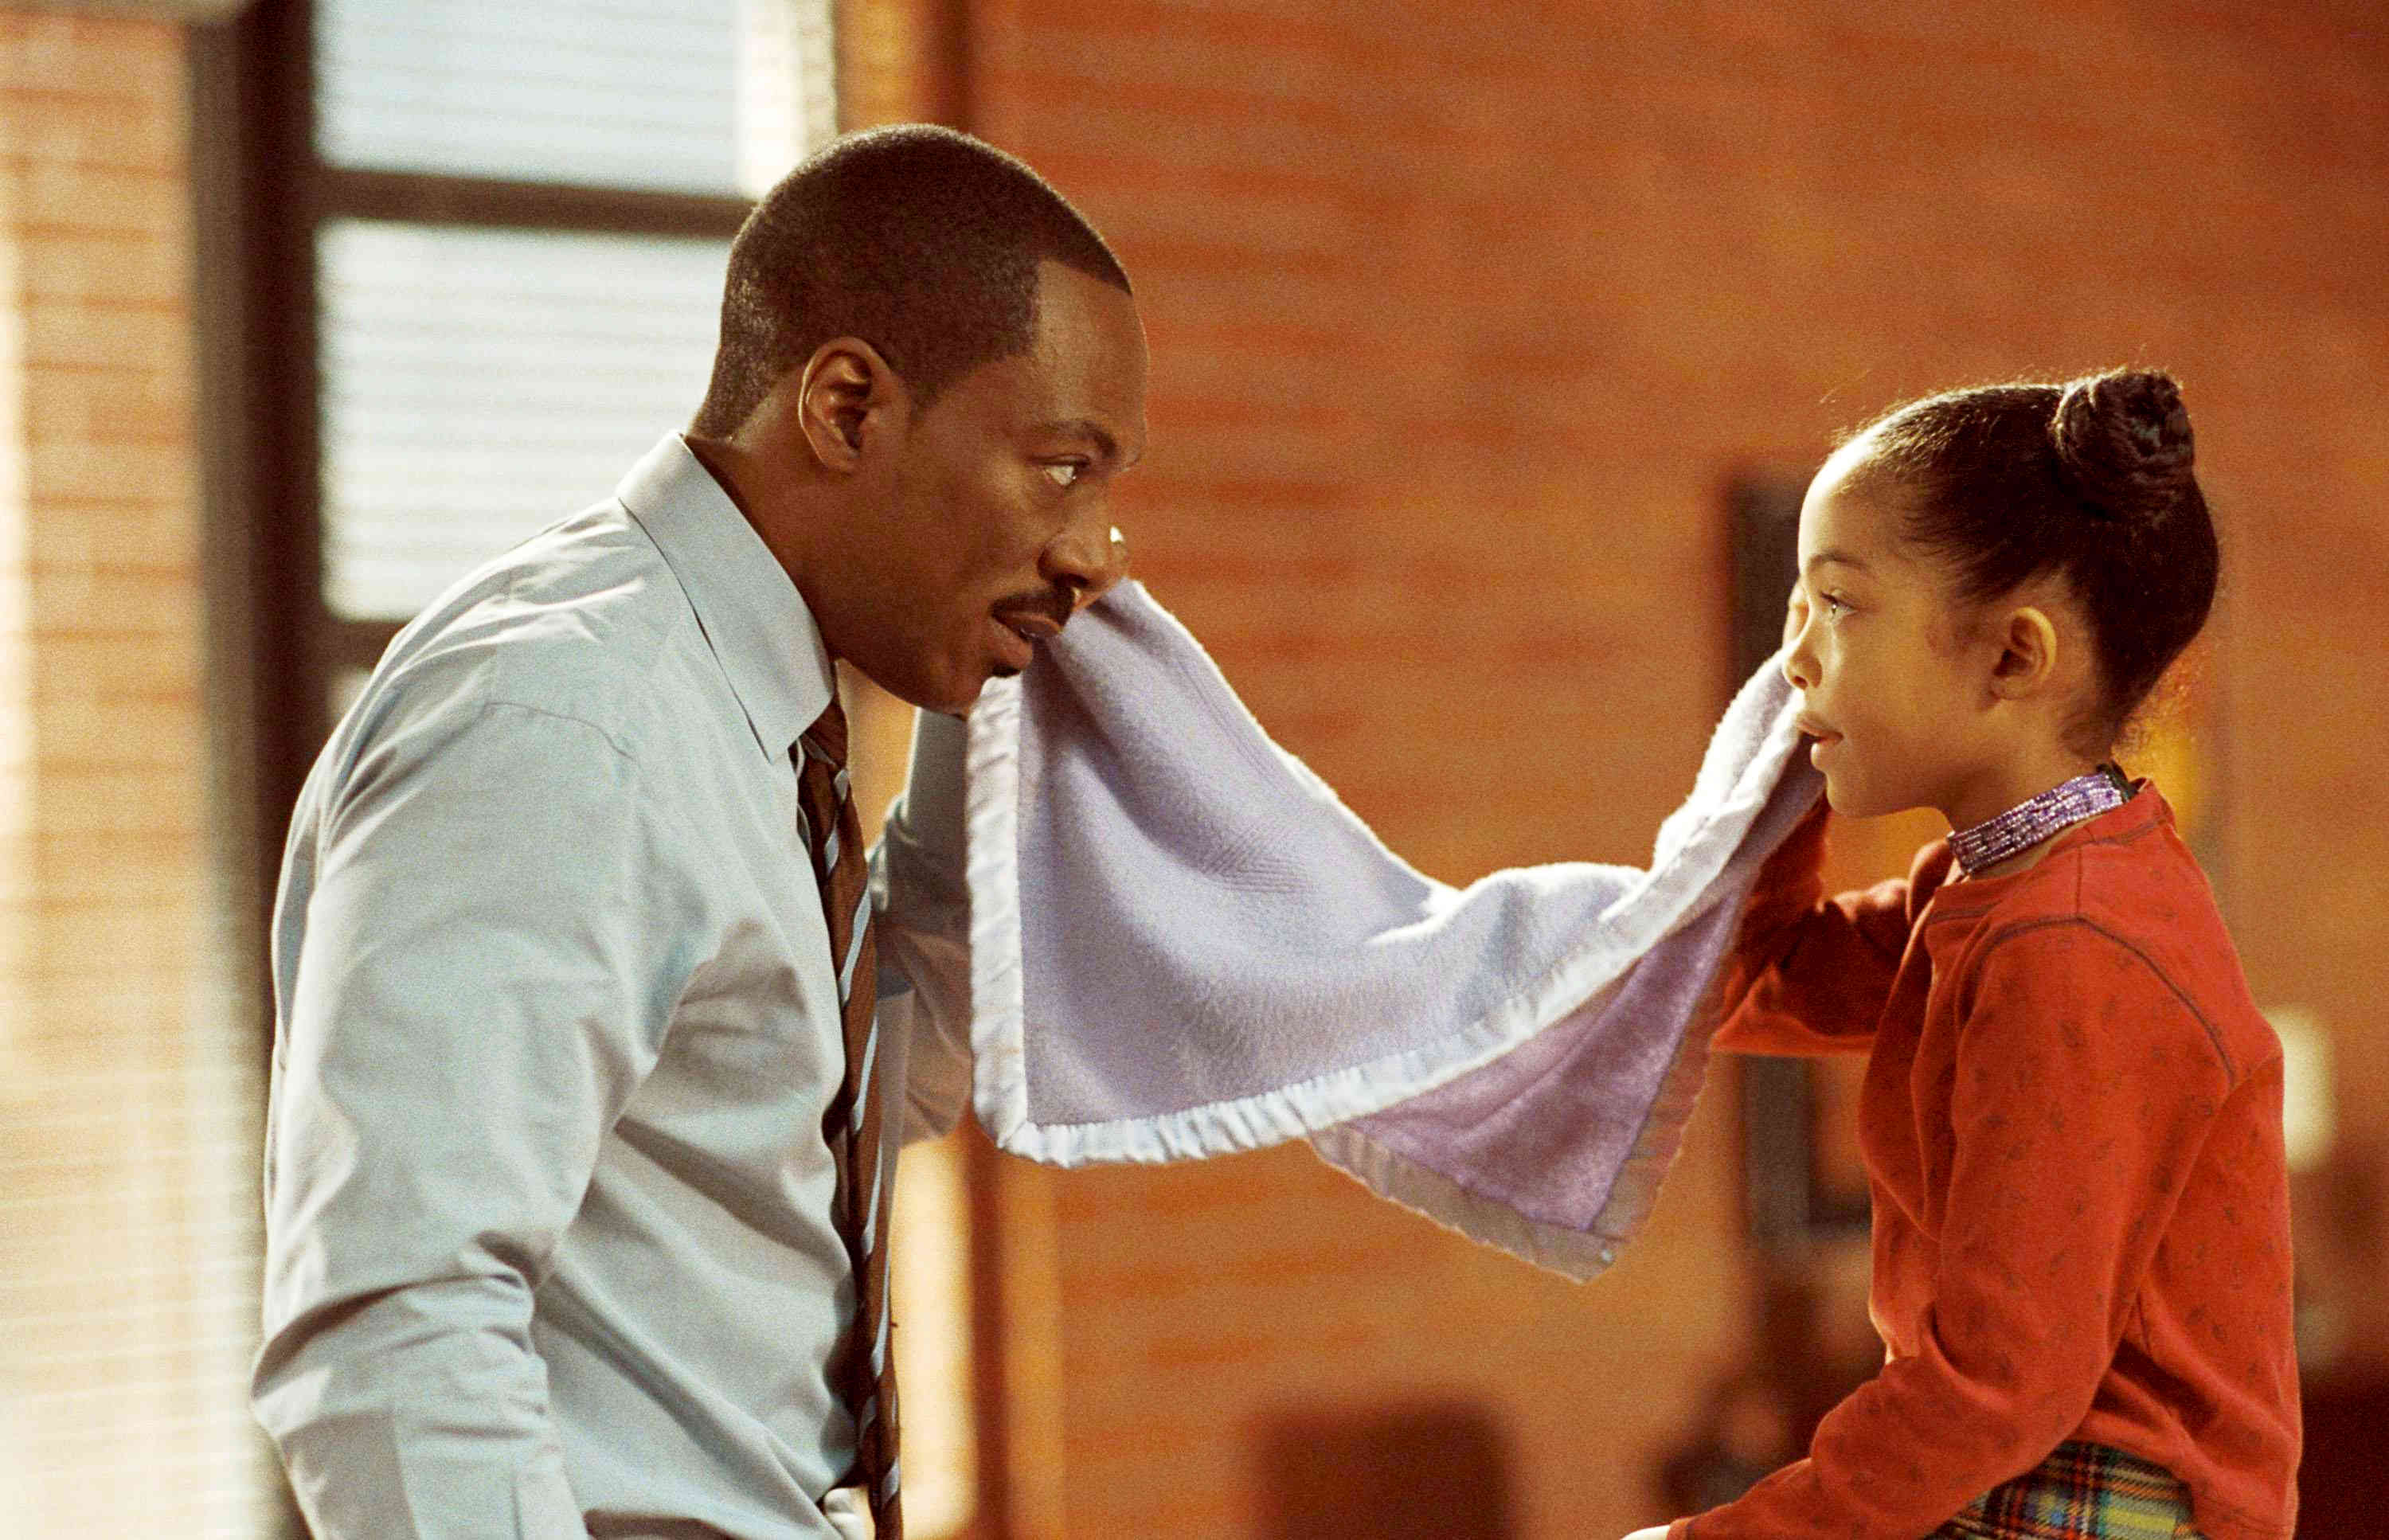 Eddie Murphy stars as Evan and Yara Shahidi stars as Olivia in Paramount Pictures' Imagine That (2009). Photo credit by Bruce McBroom.